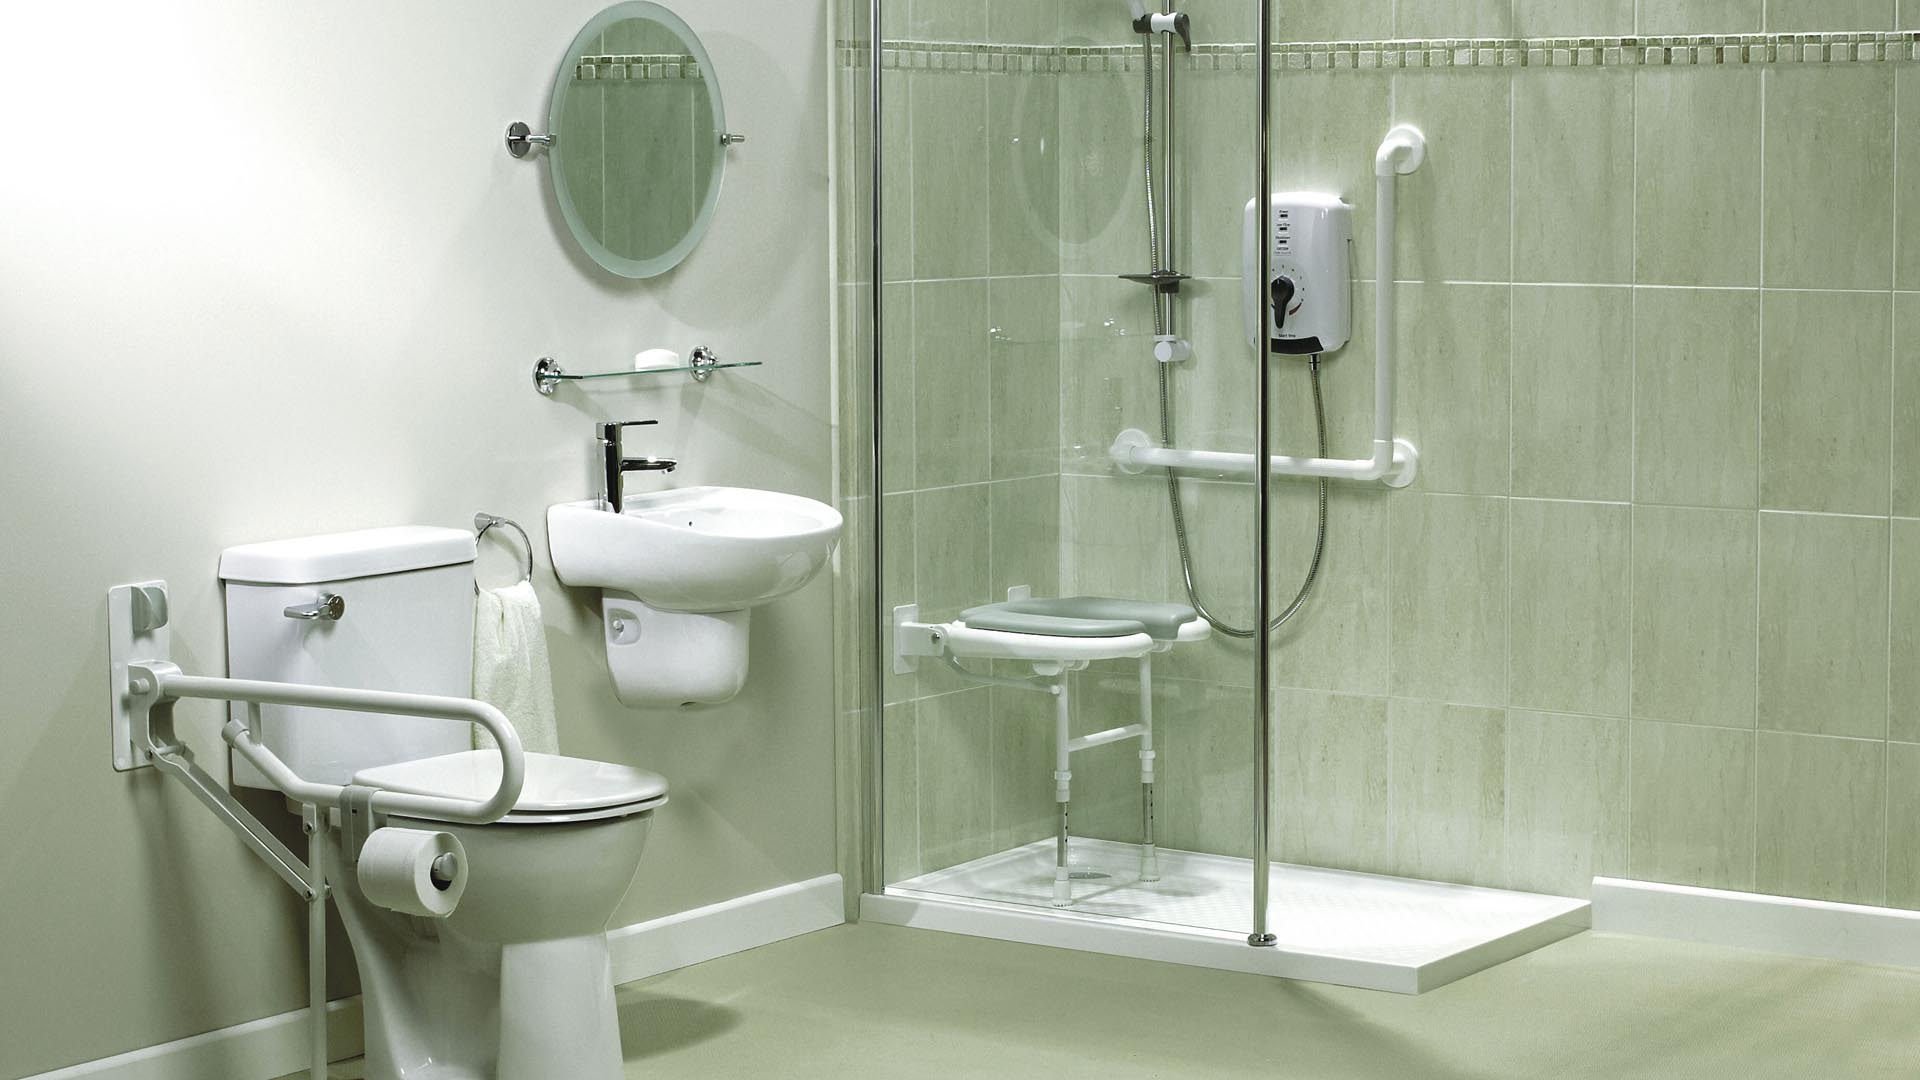 Disabled Bathroom Products | Woodhouse & Sturnham Ltd, plumbing ...